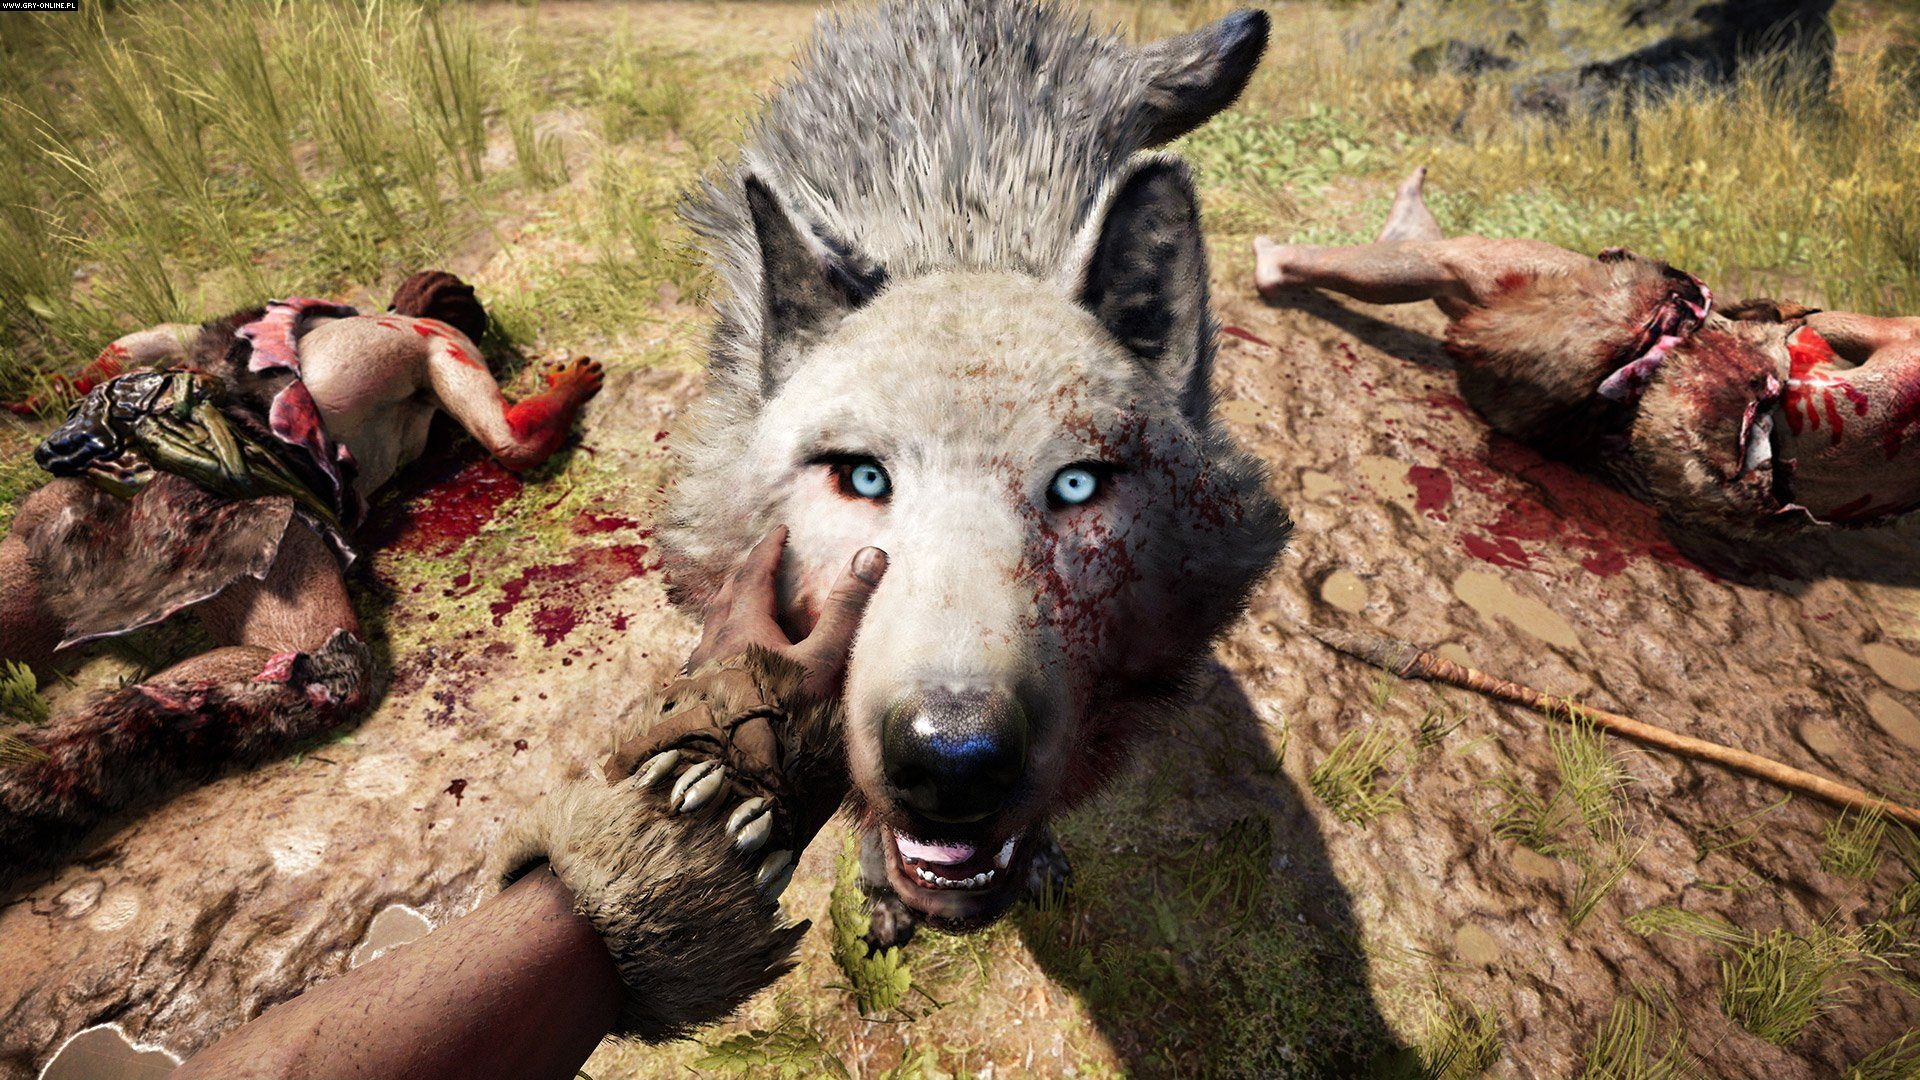 Far Cry Primal image #5